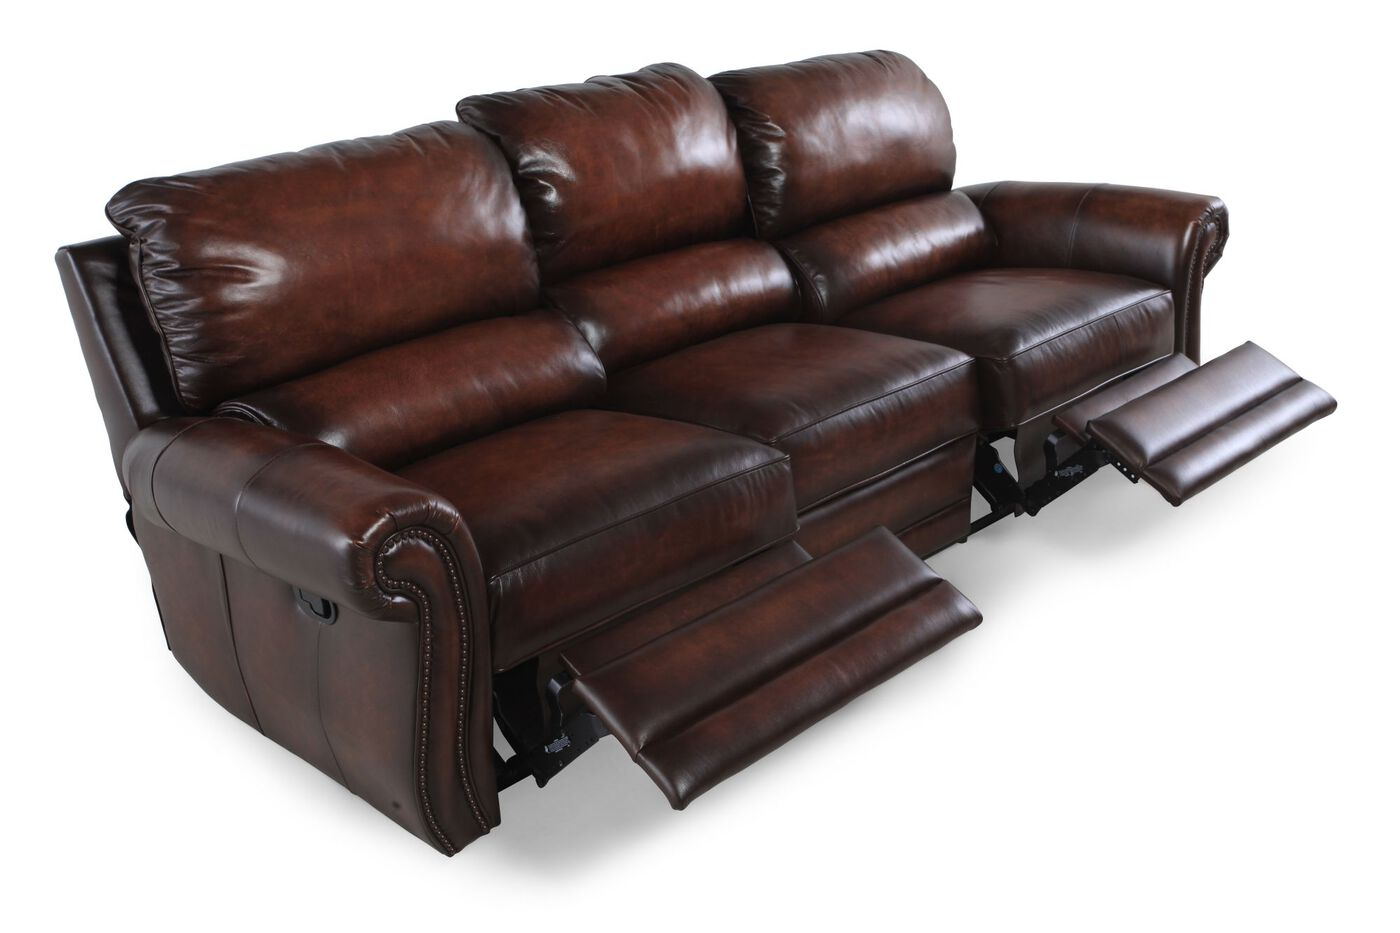 wall saver reclining sofa best home furnishings optima s970rz4 e saver reclining sofa with thesofa. Black Bedroom Furniture Sets. Home Design Ideas